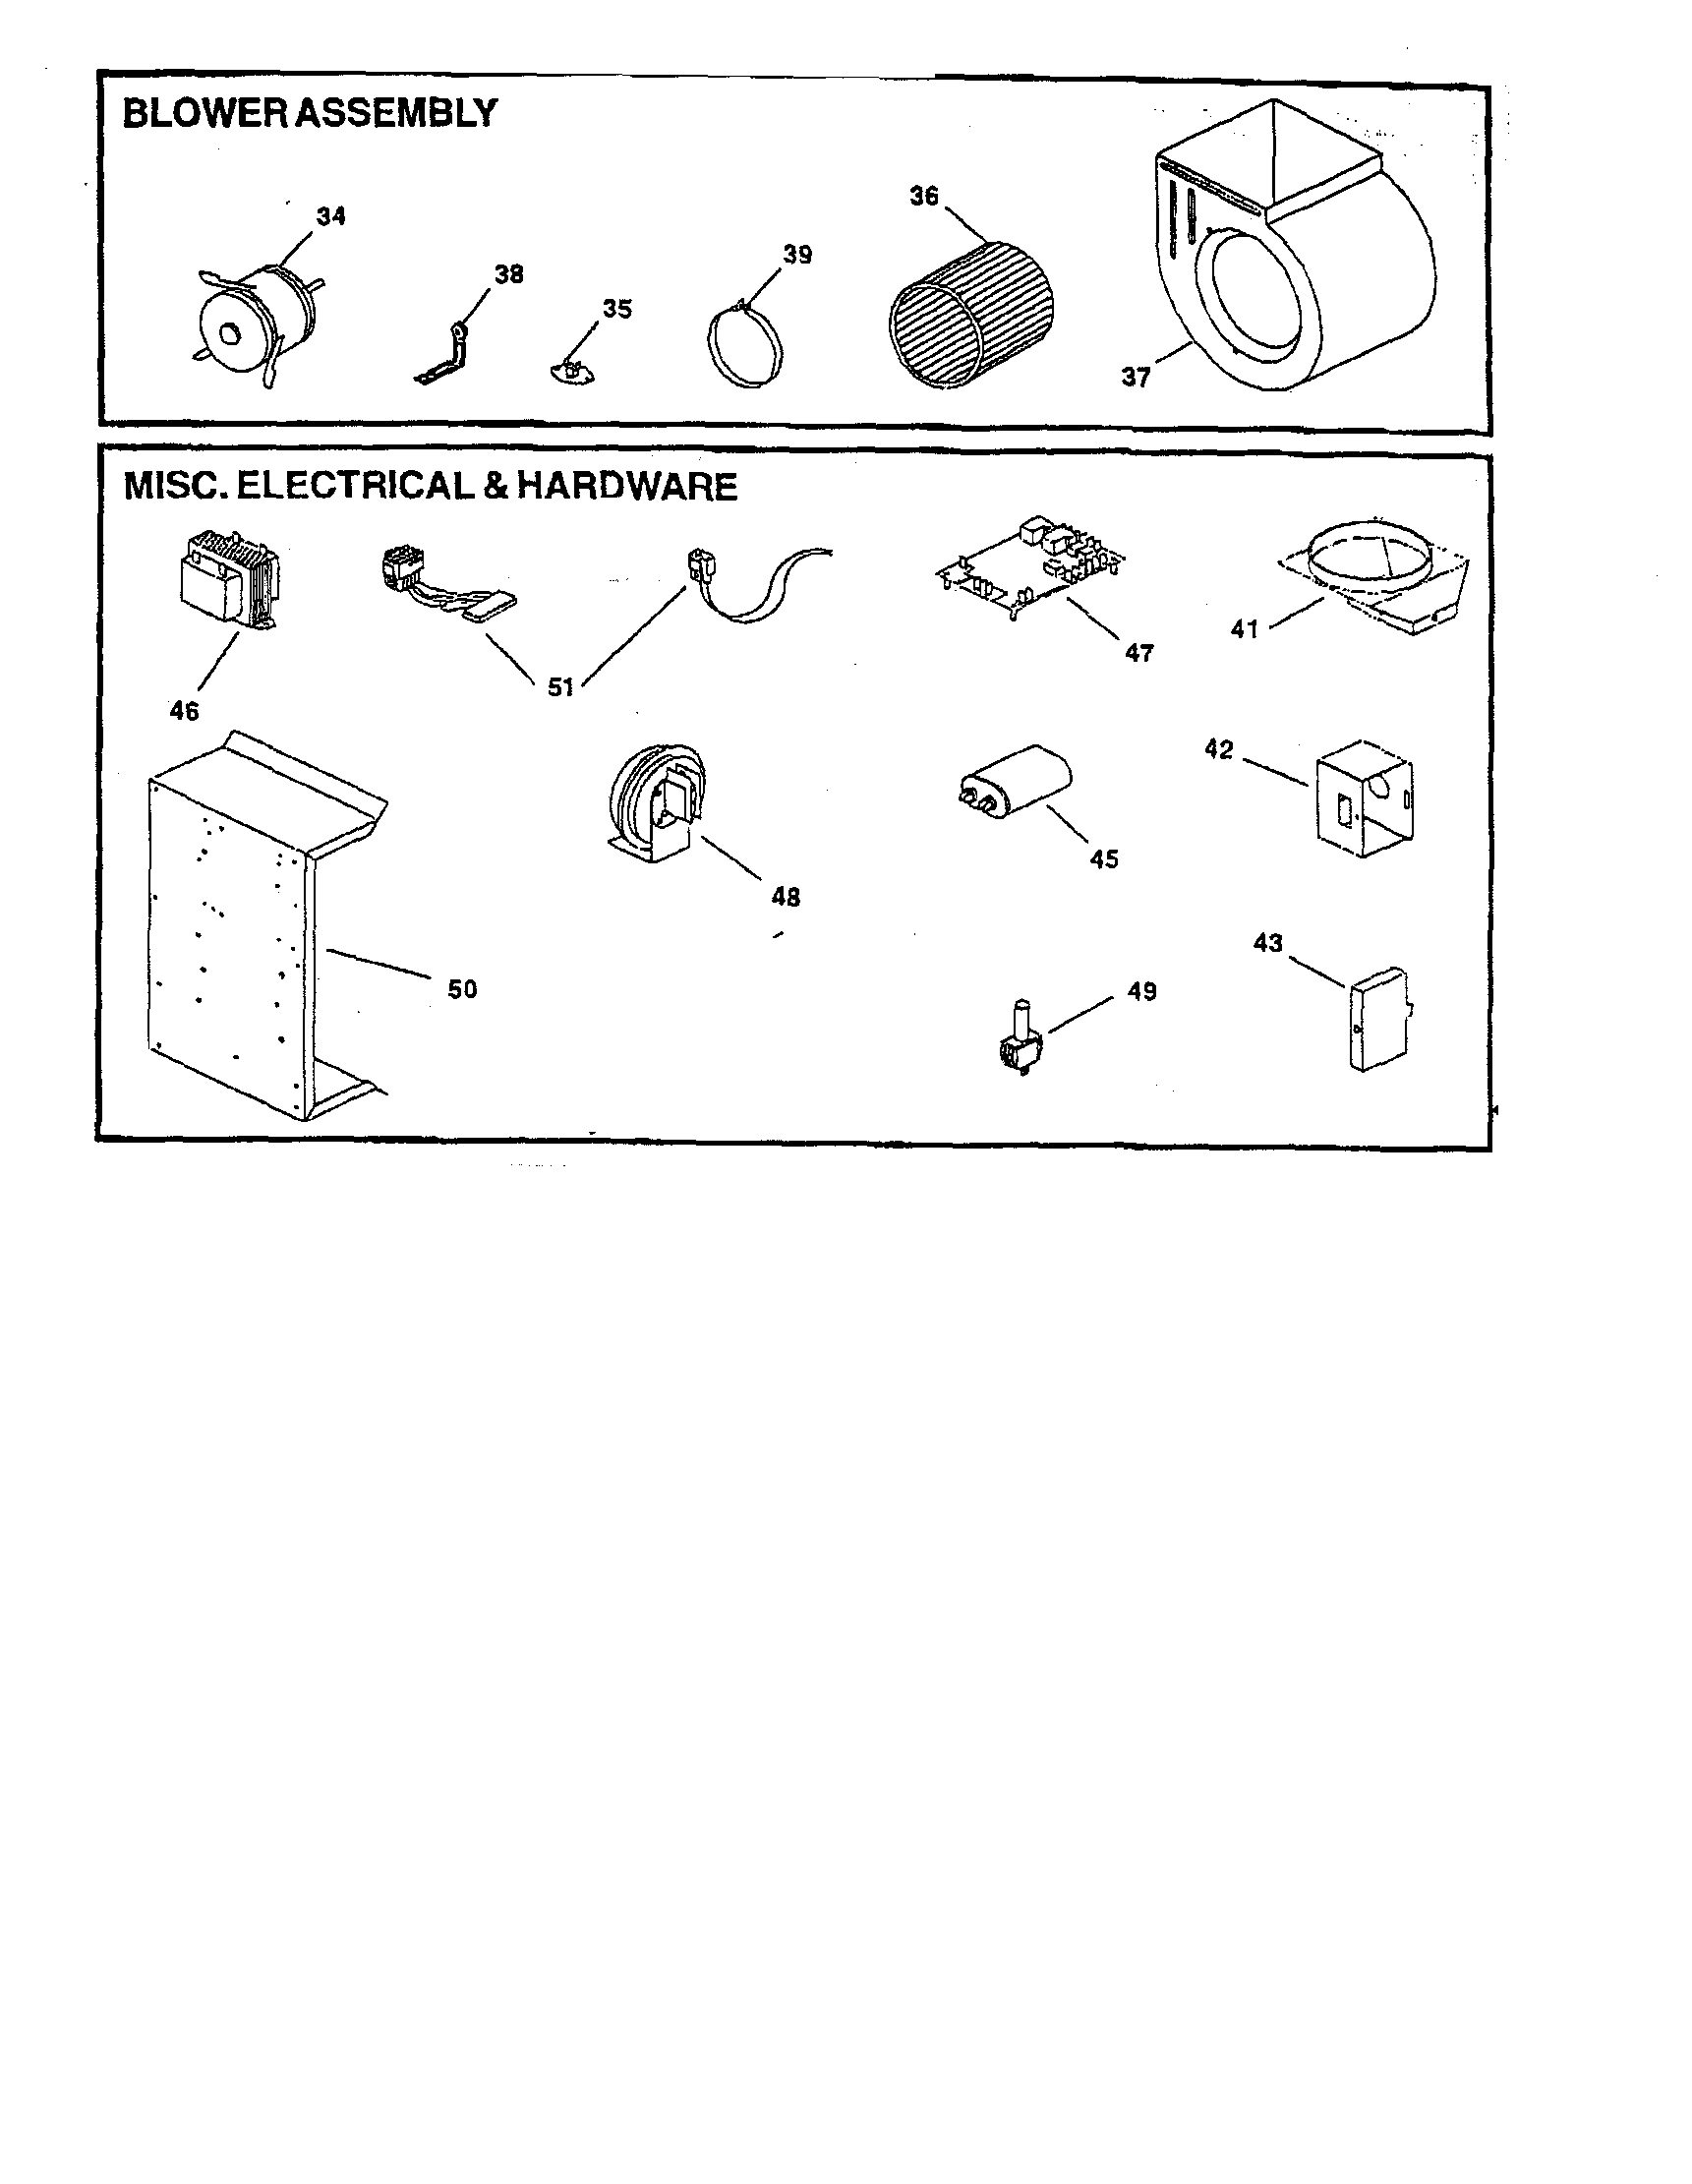 electrical hardware diagram parts list for model gmp1005 goodman